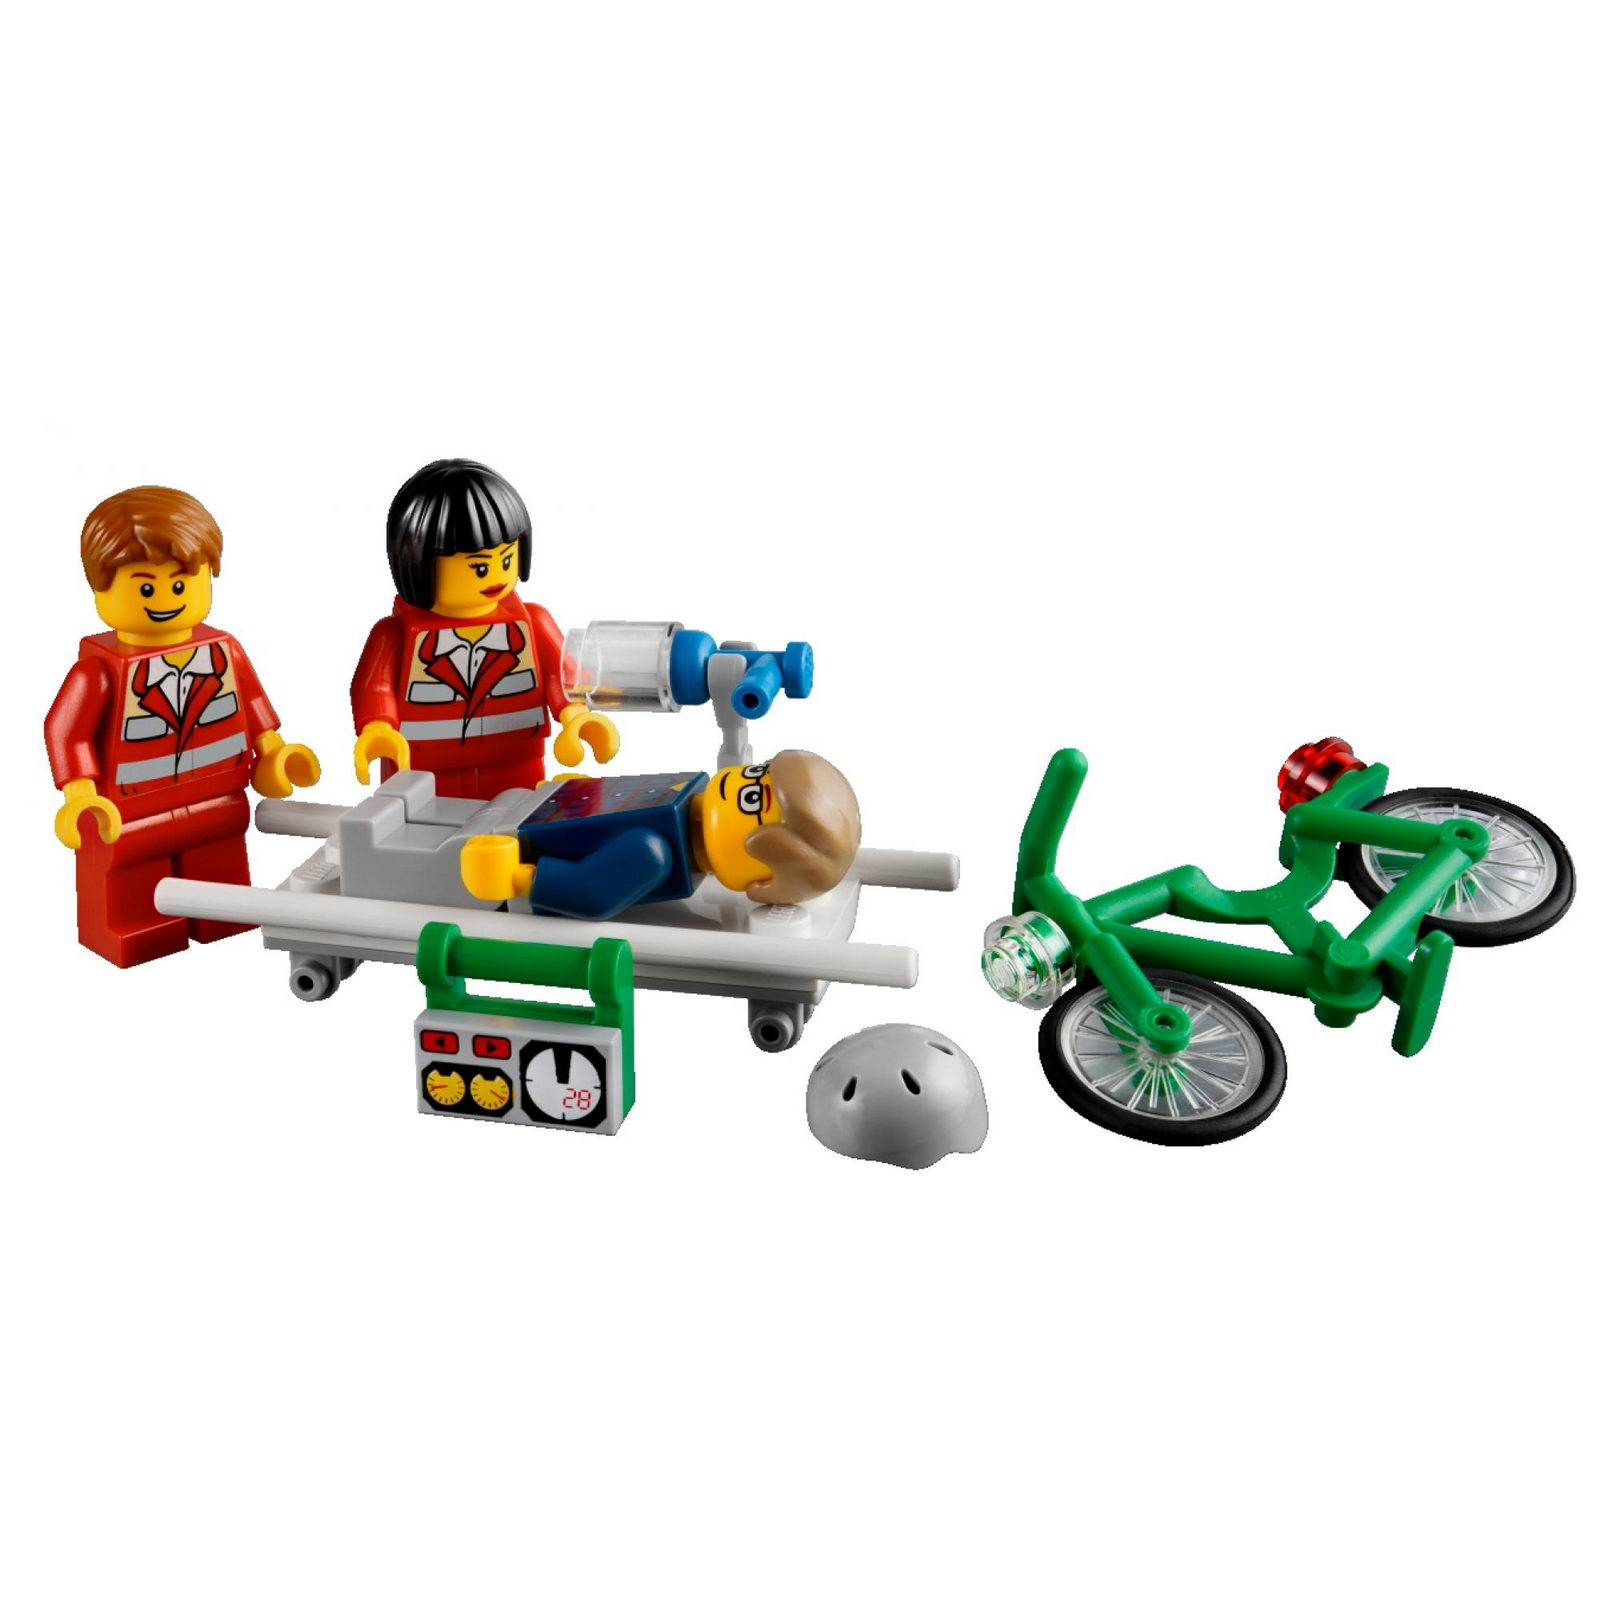 Lego City Clip Art Free Theme: city, hospital